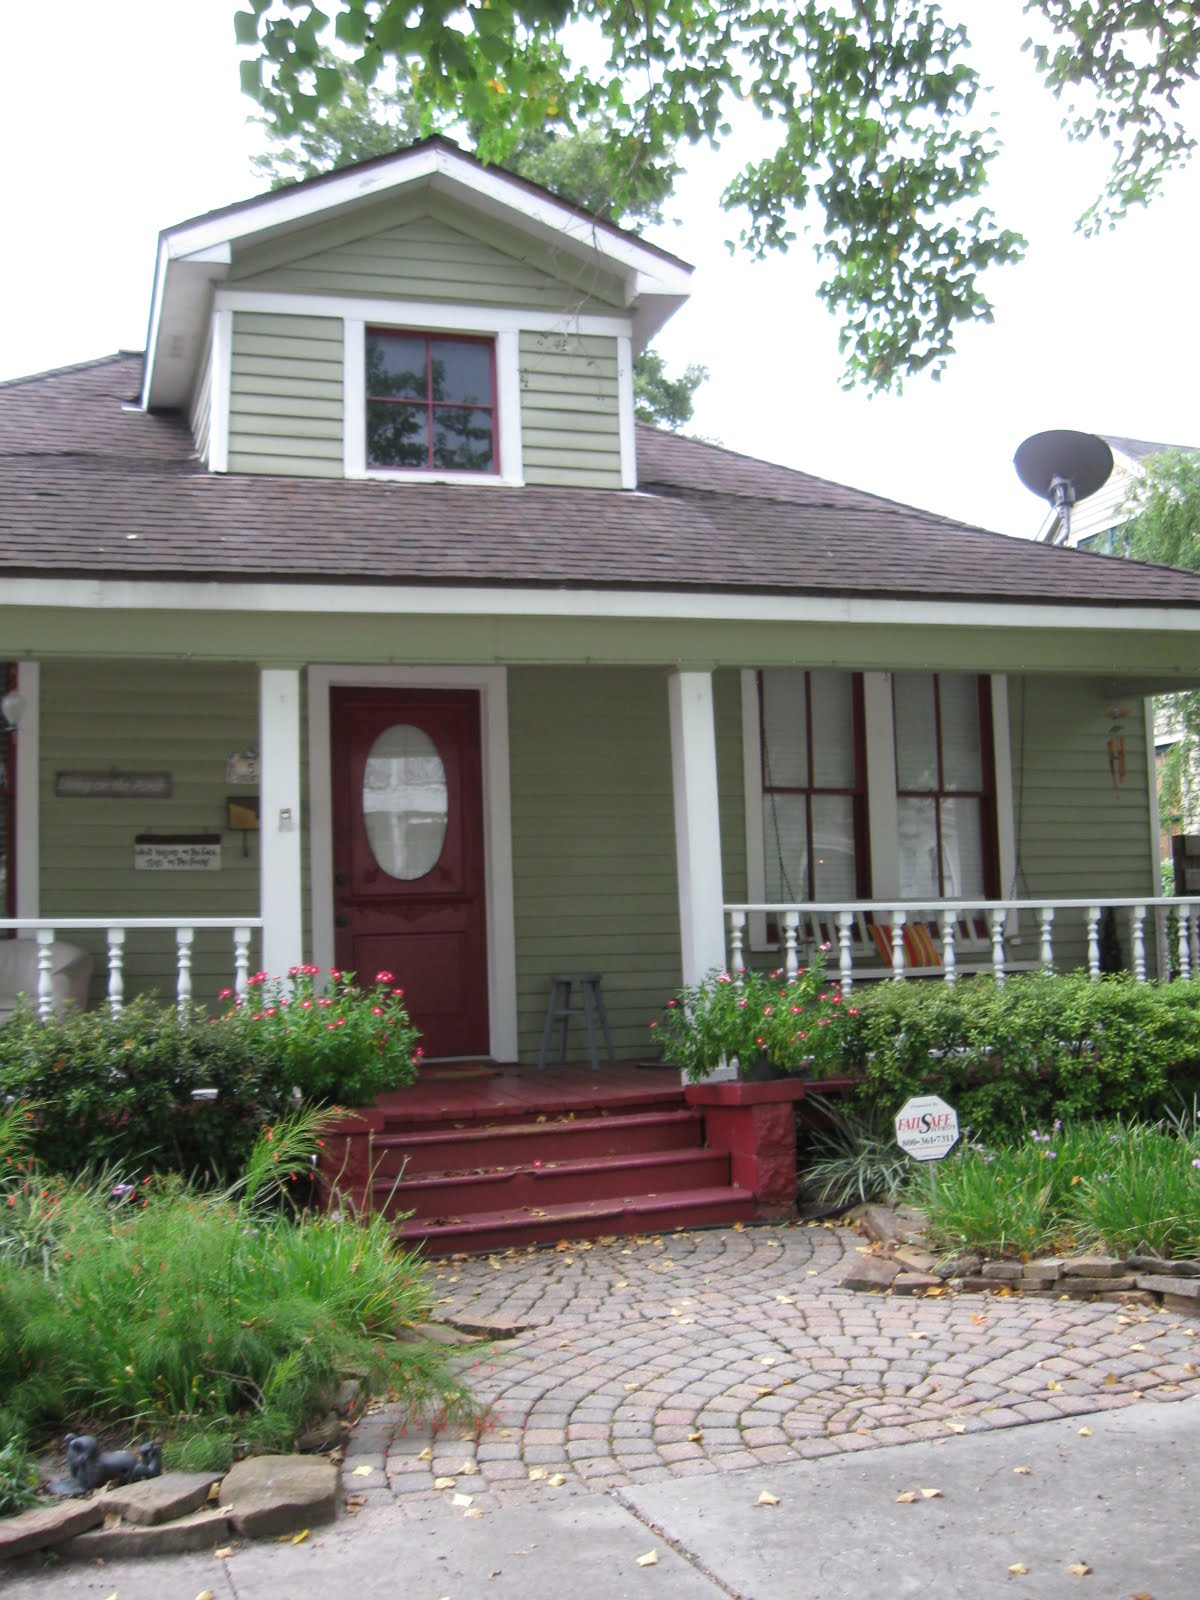 The other houston 1930 front porch bungalow for House porch design